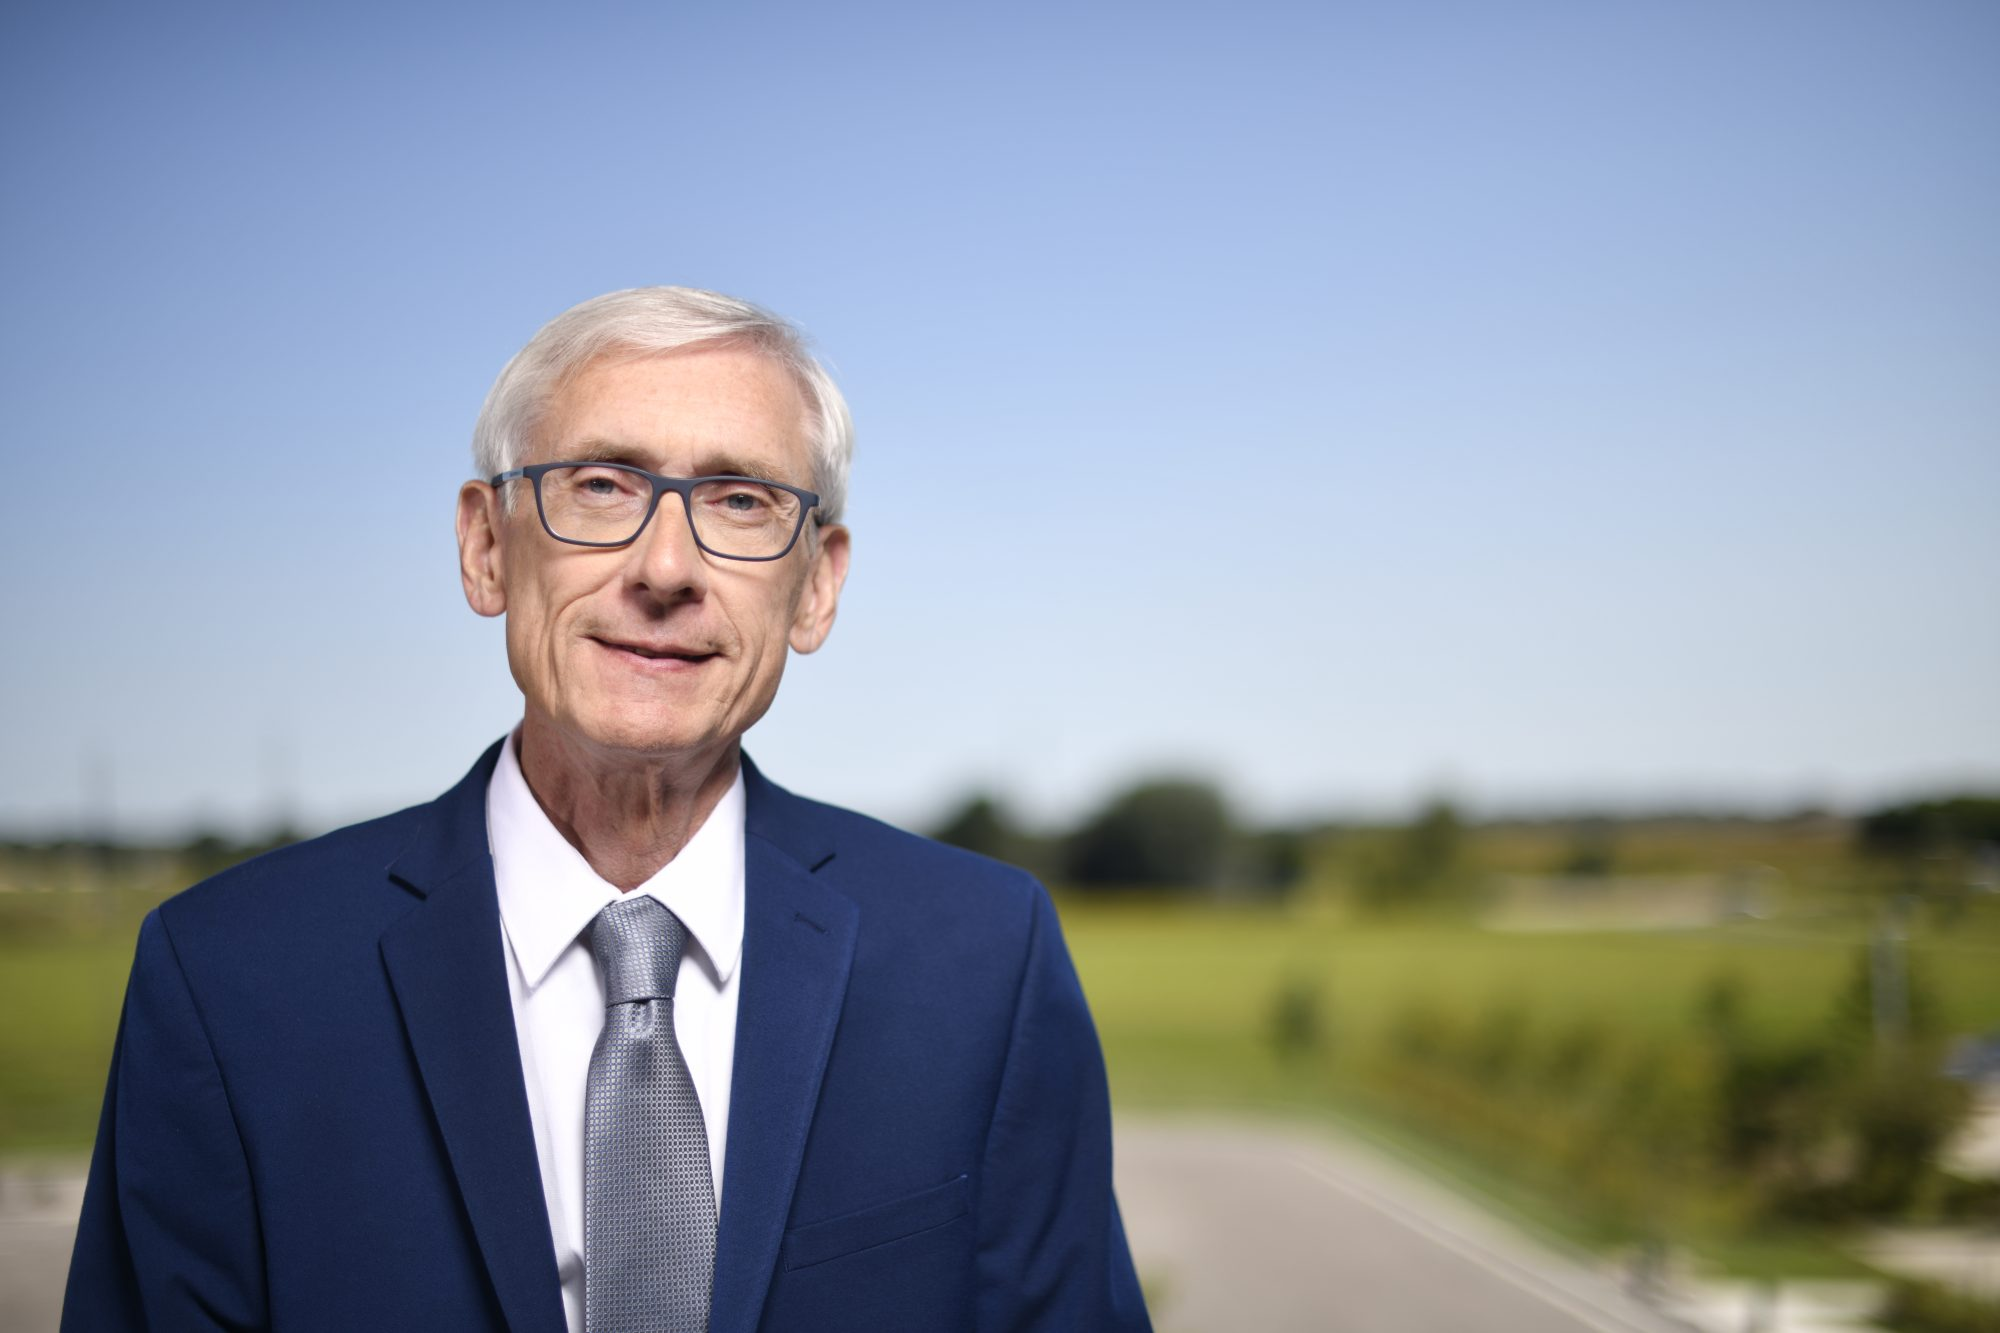 Gov. Evers Directs DNR to Close 40 State Parks, Forests and Recreational Areas